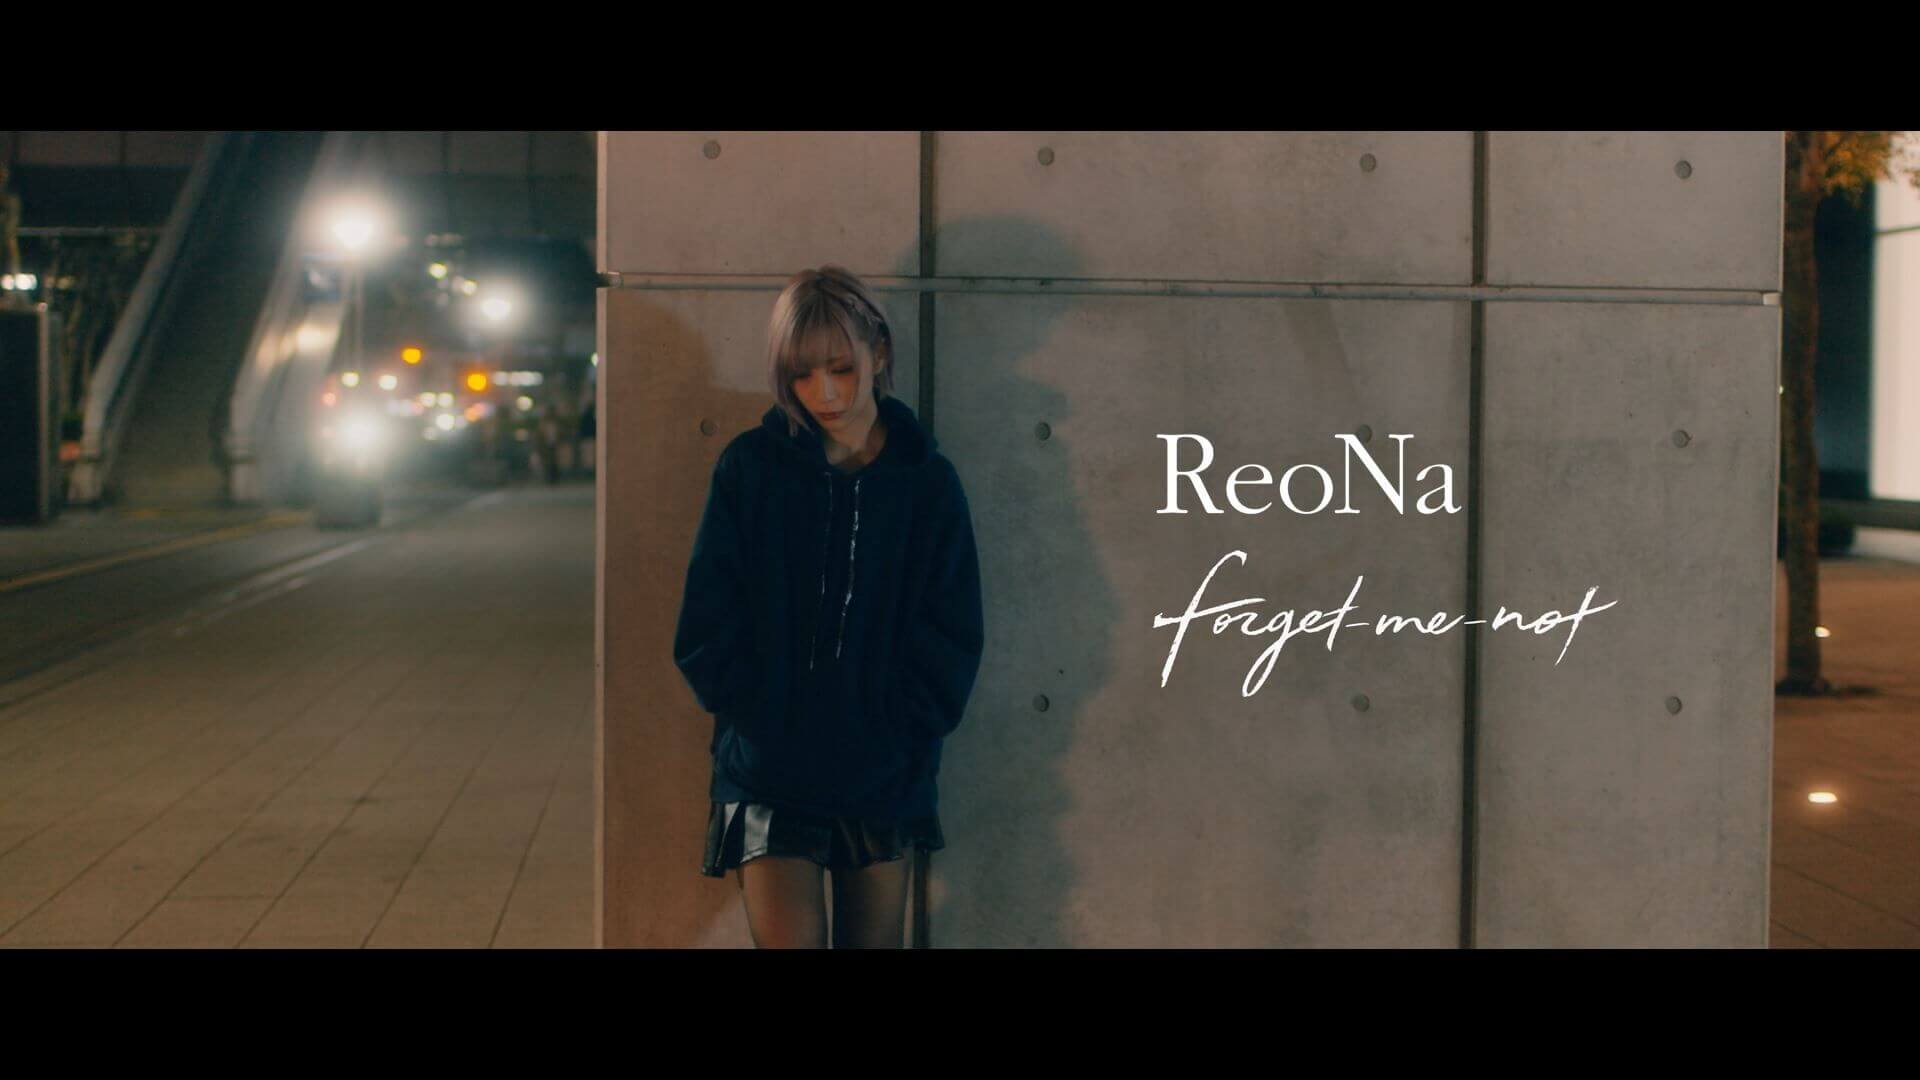 ReoNa forget me not